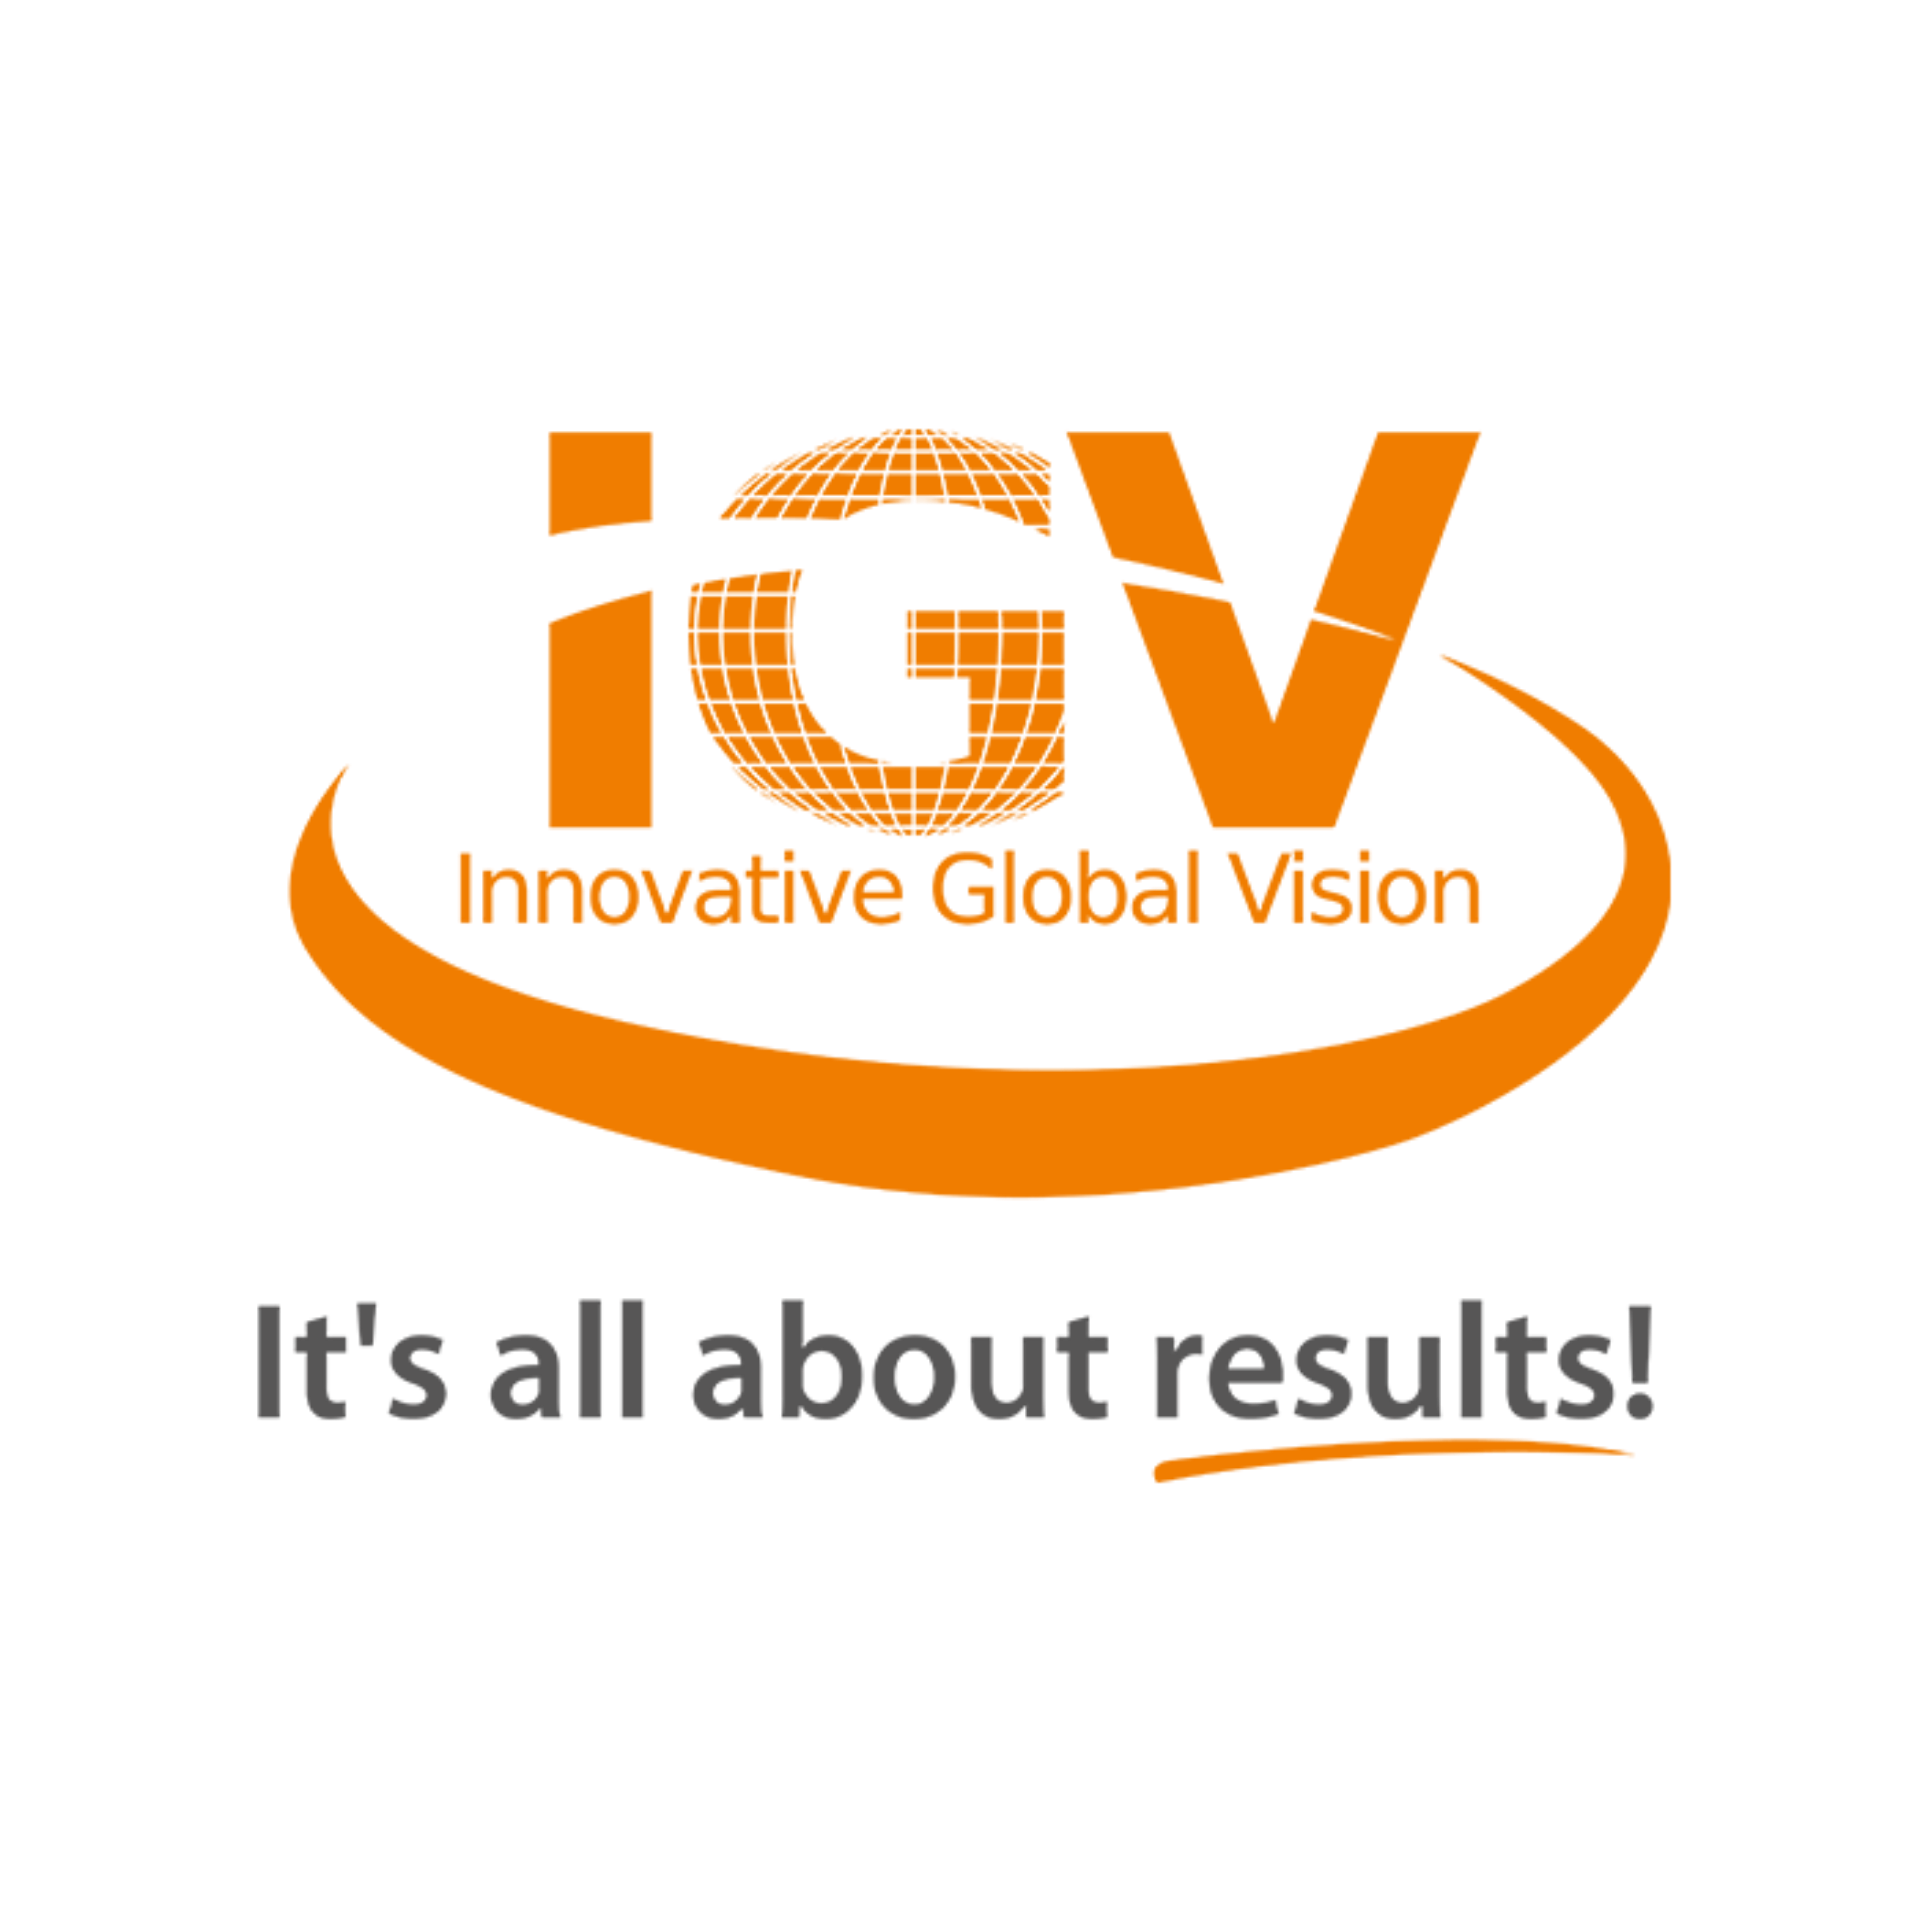 Innovative Global Vision